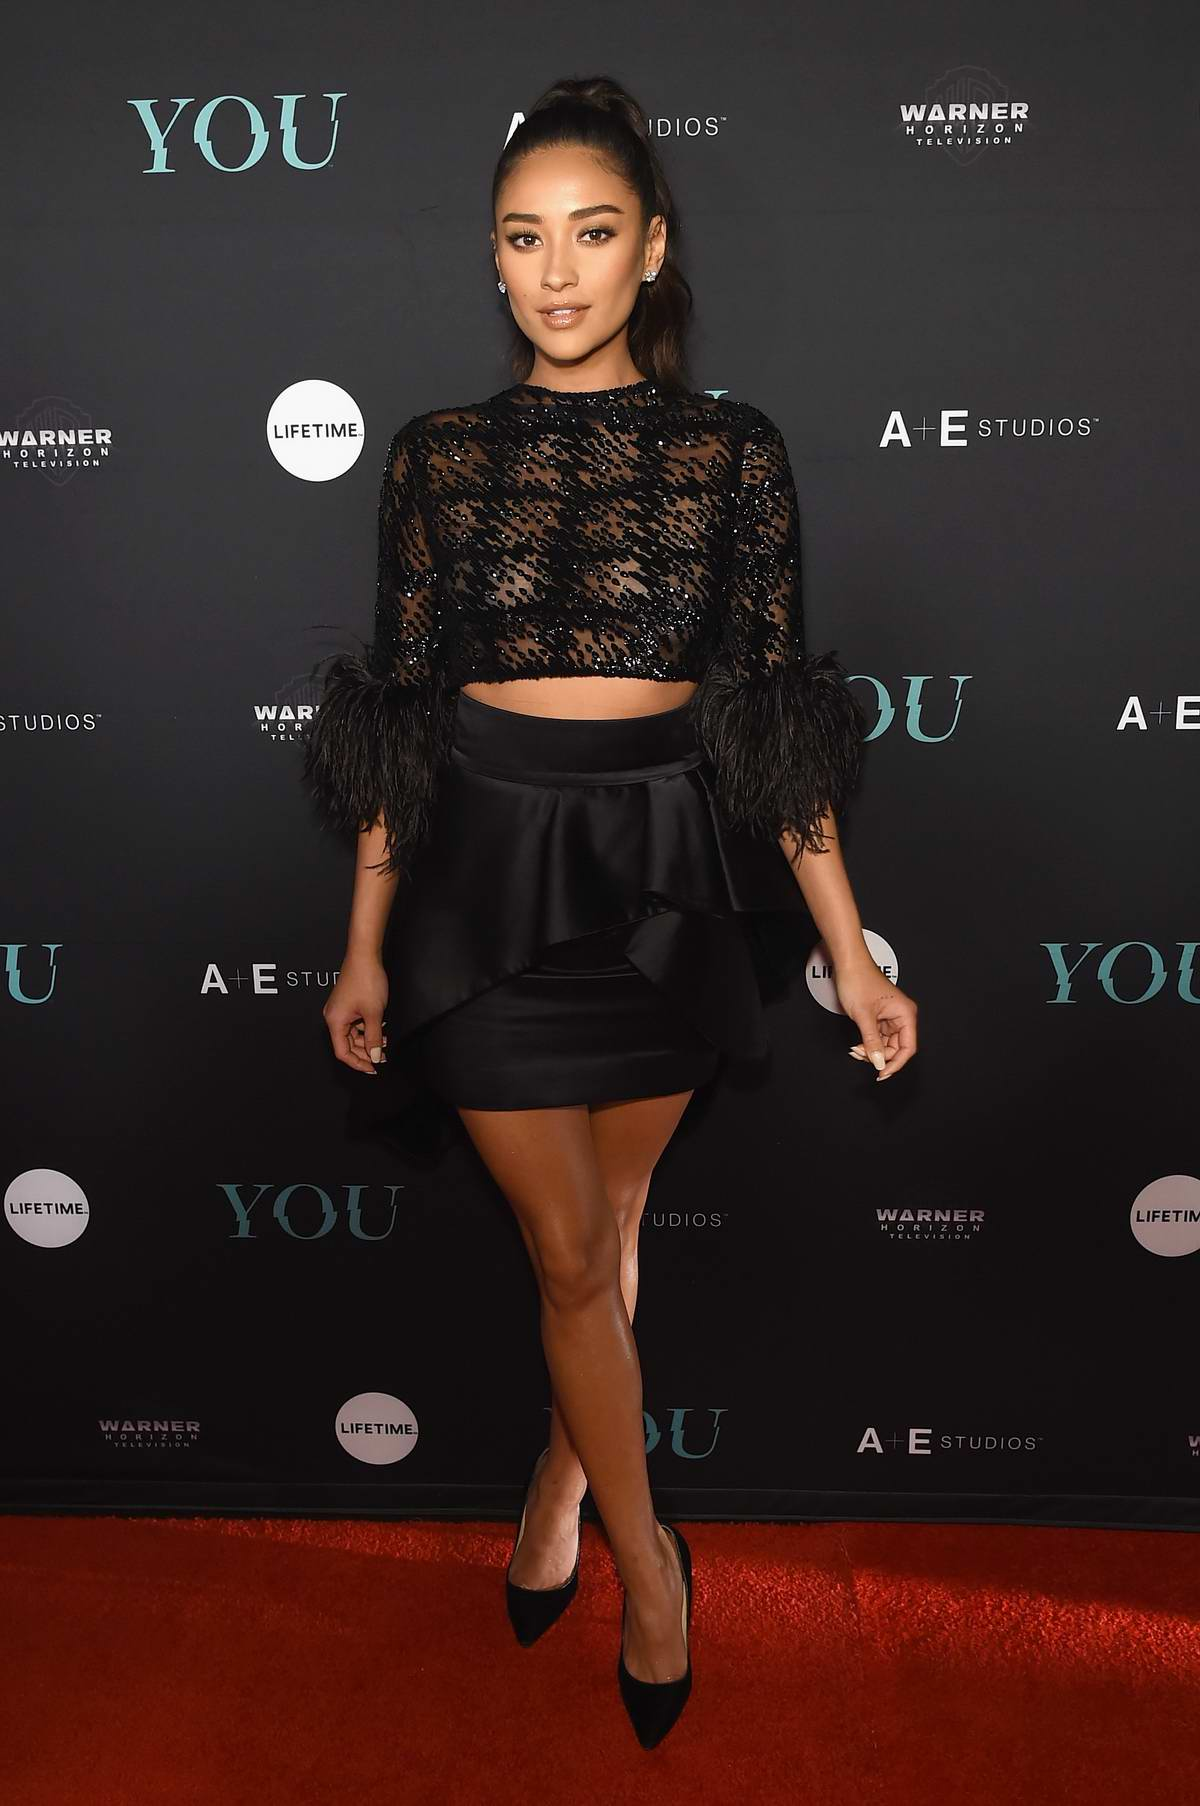 Shay Mitchell attends 'You' TV series premiere in New York City